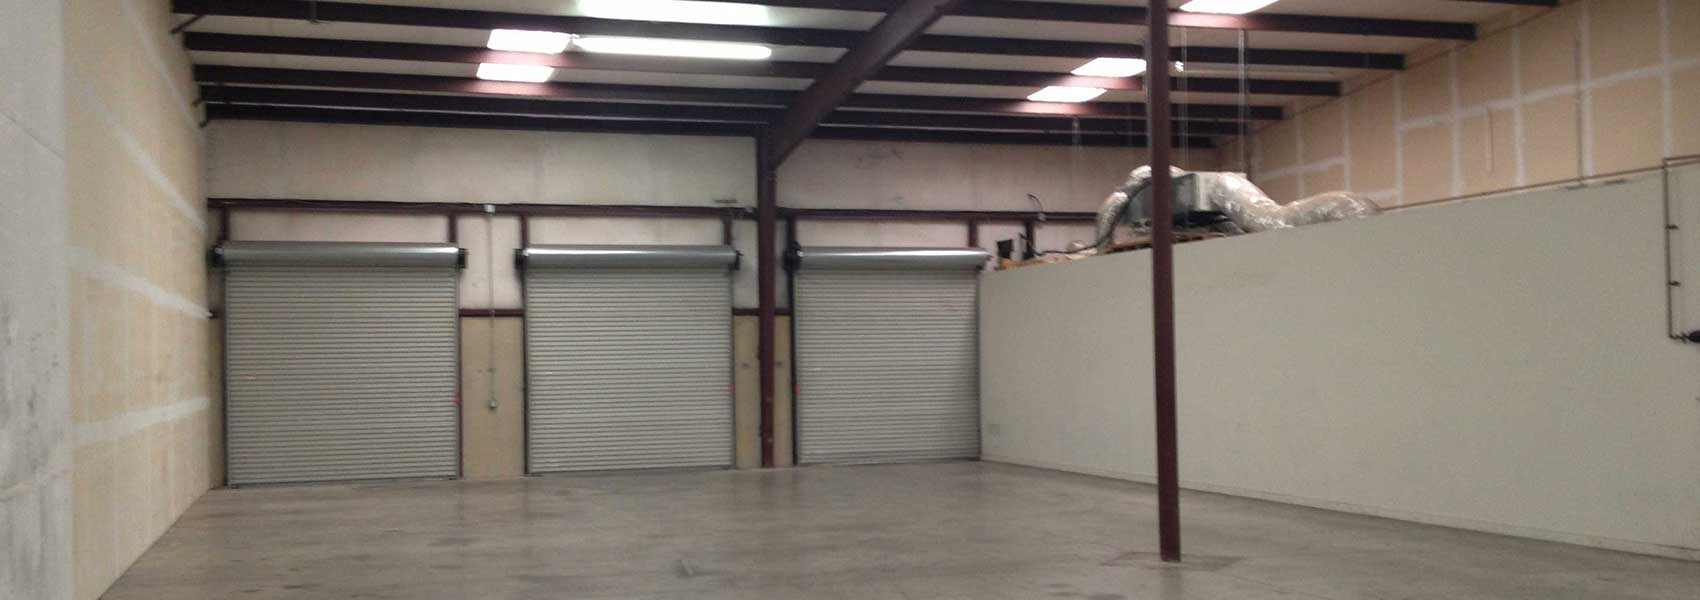 For the very best shop space for rent in Fort Worth, call RDS Real Estate